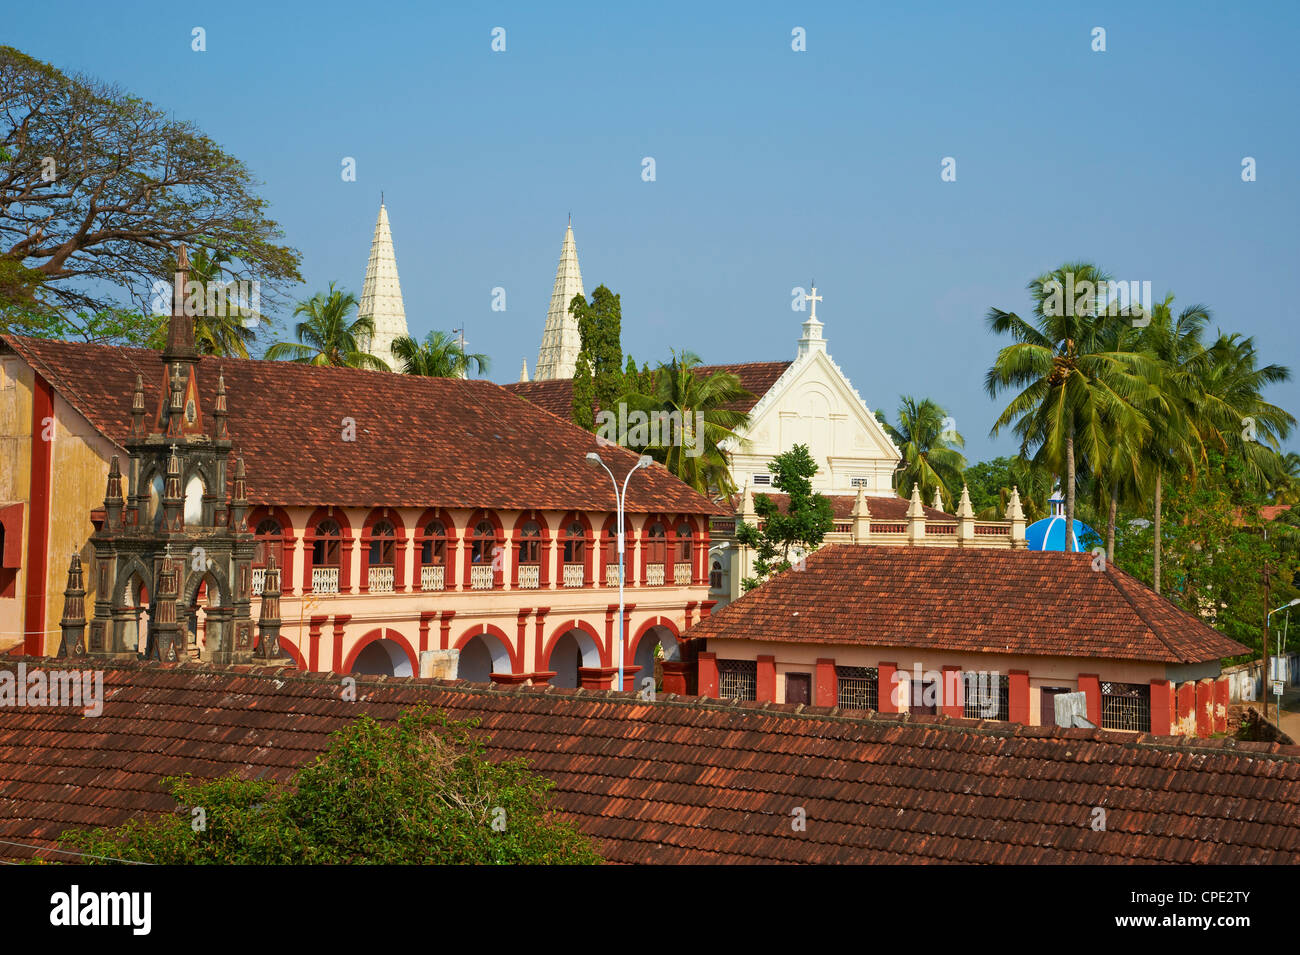 Santa Cruz Basilica and colonial style college, Fort Cochin, Kerala, India, Asia - Stock Image